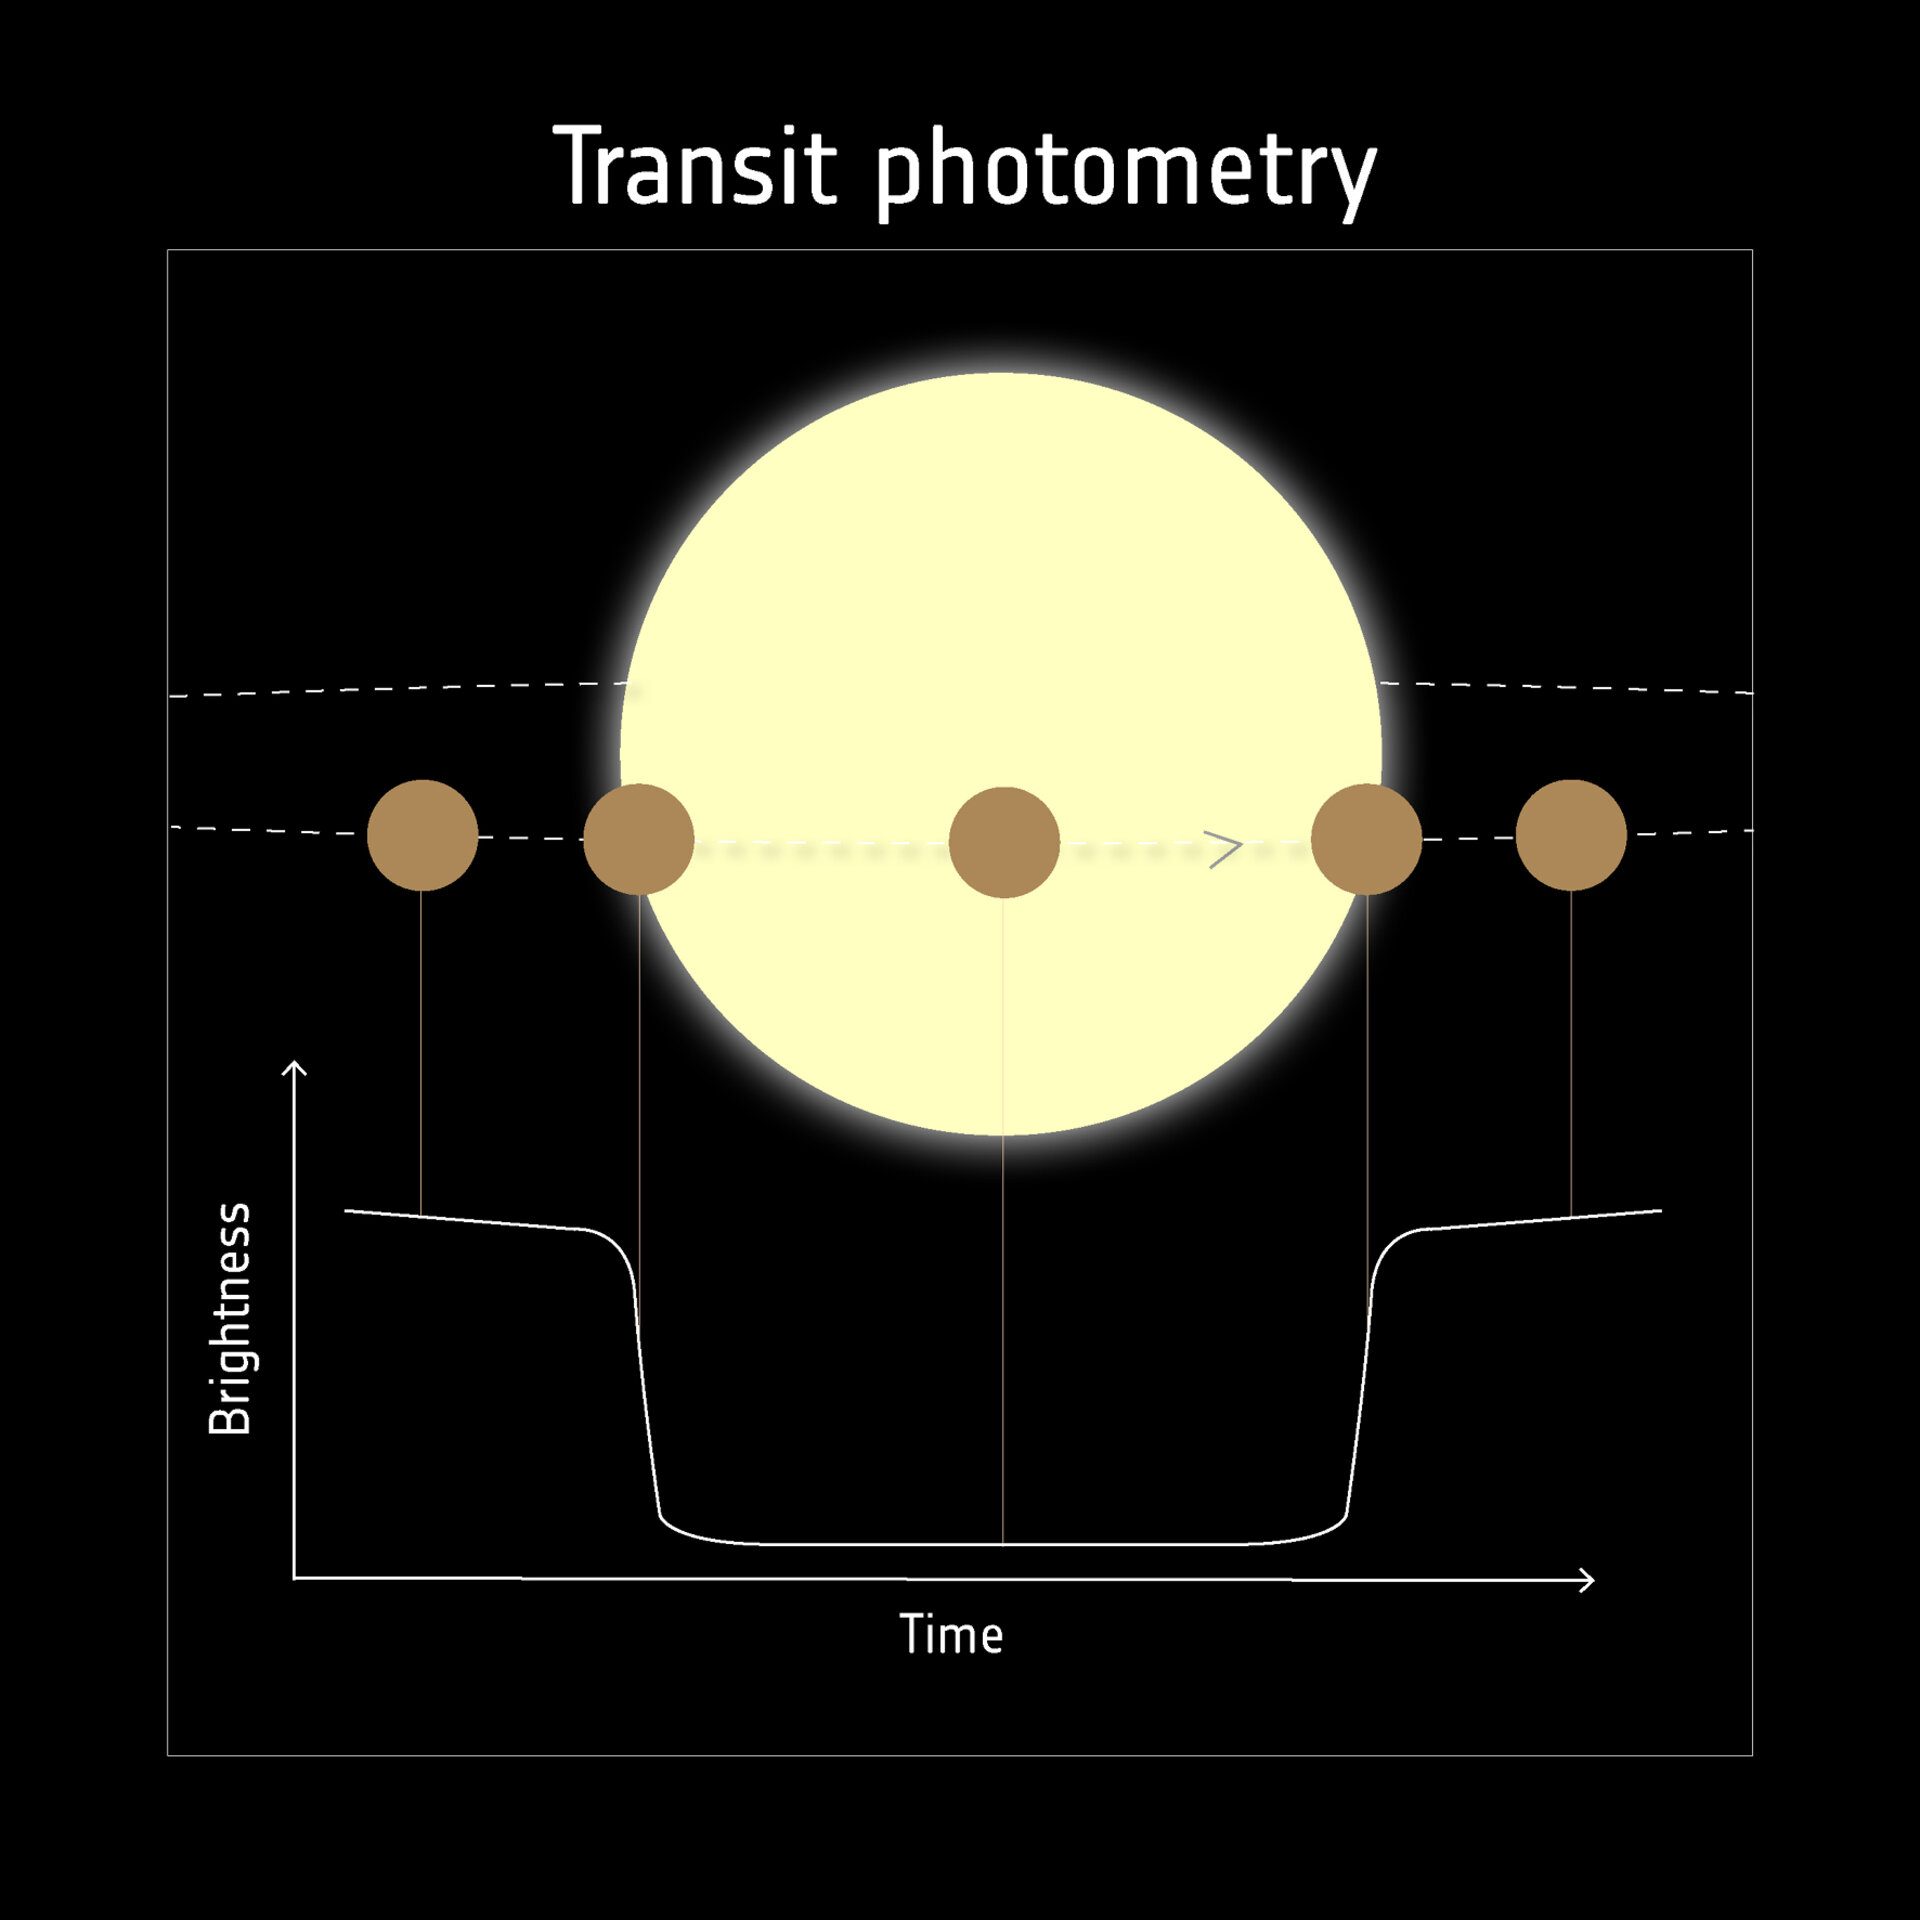 Detecting exoplanets with transits